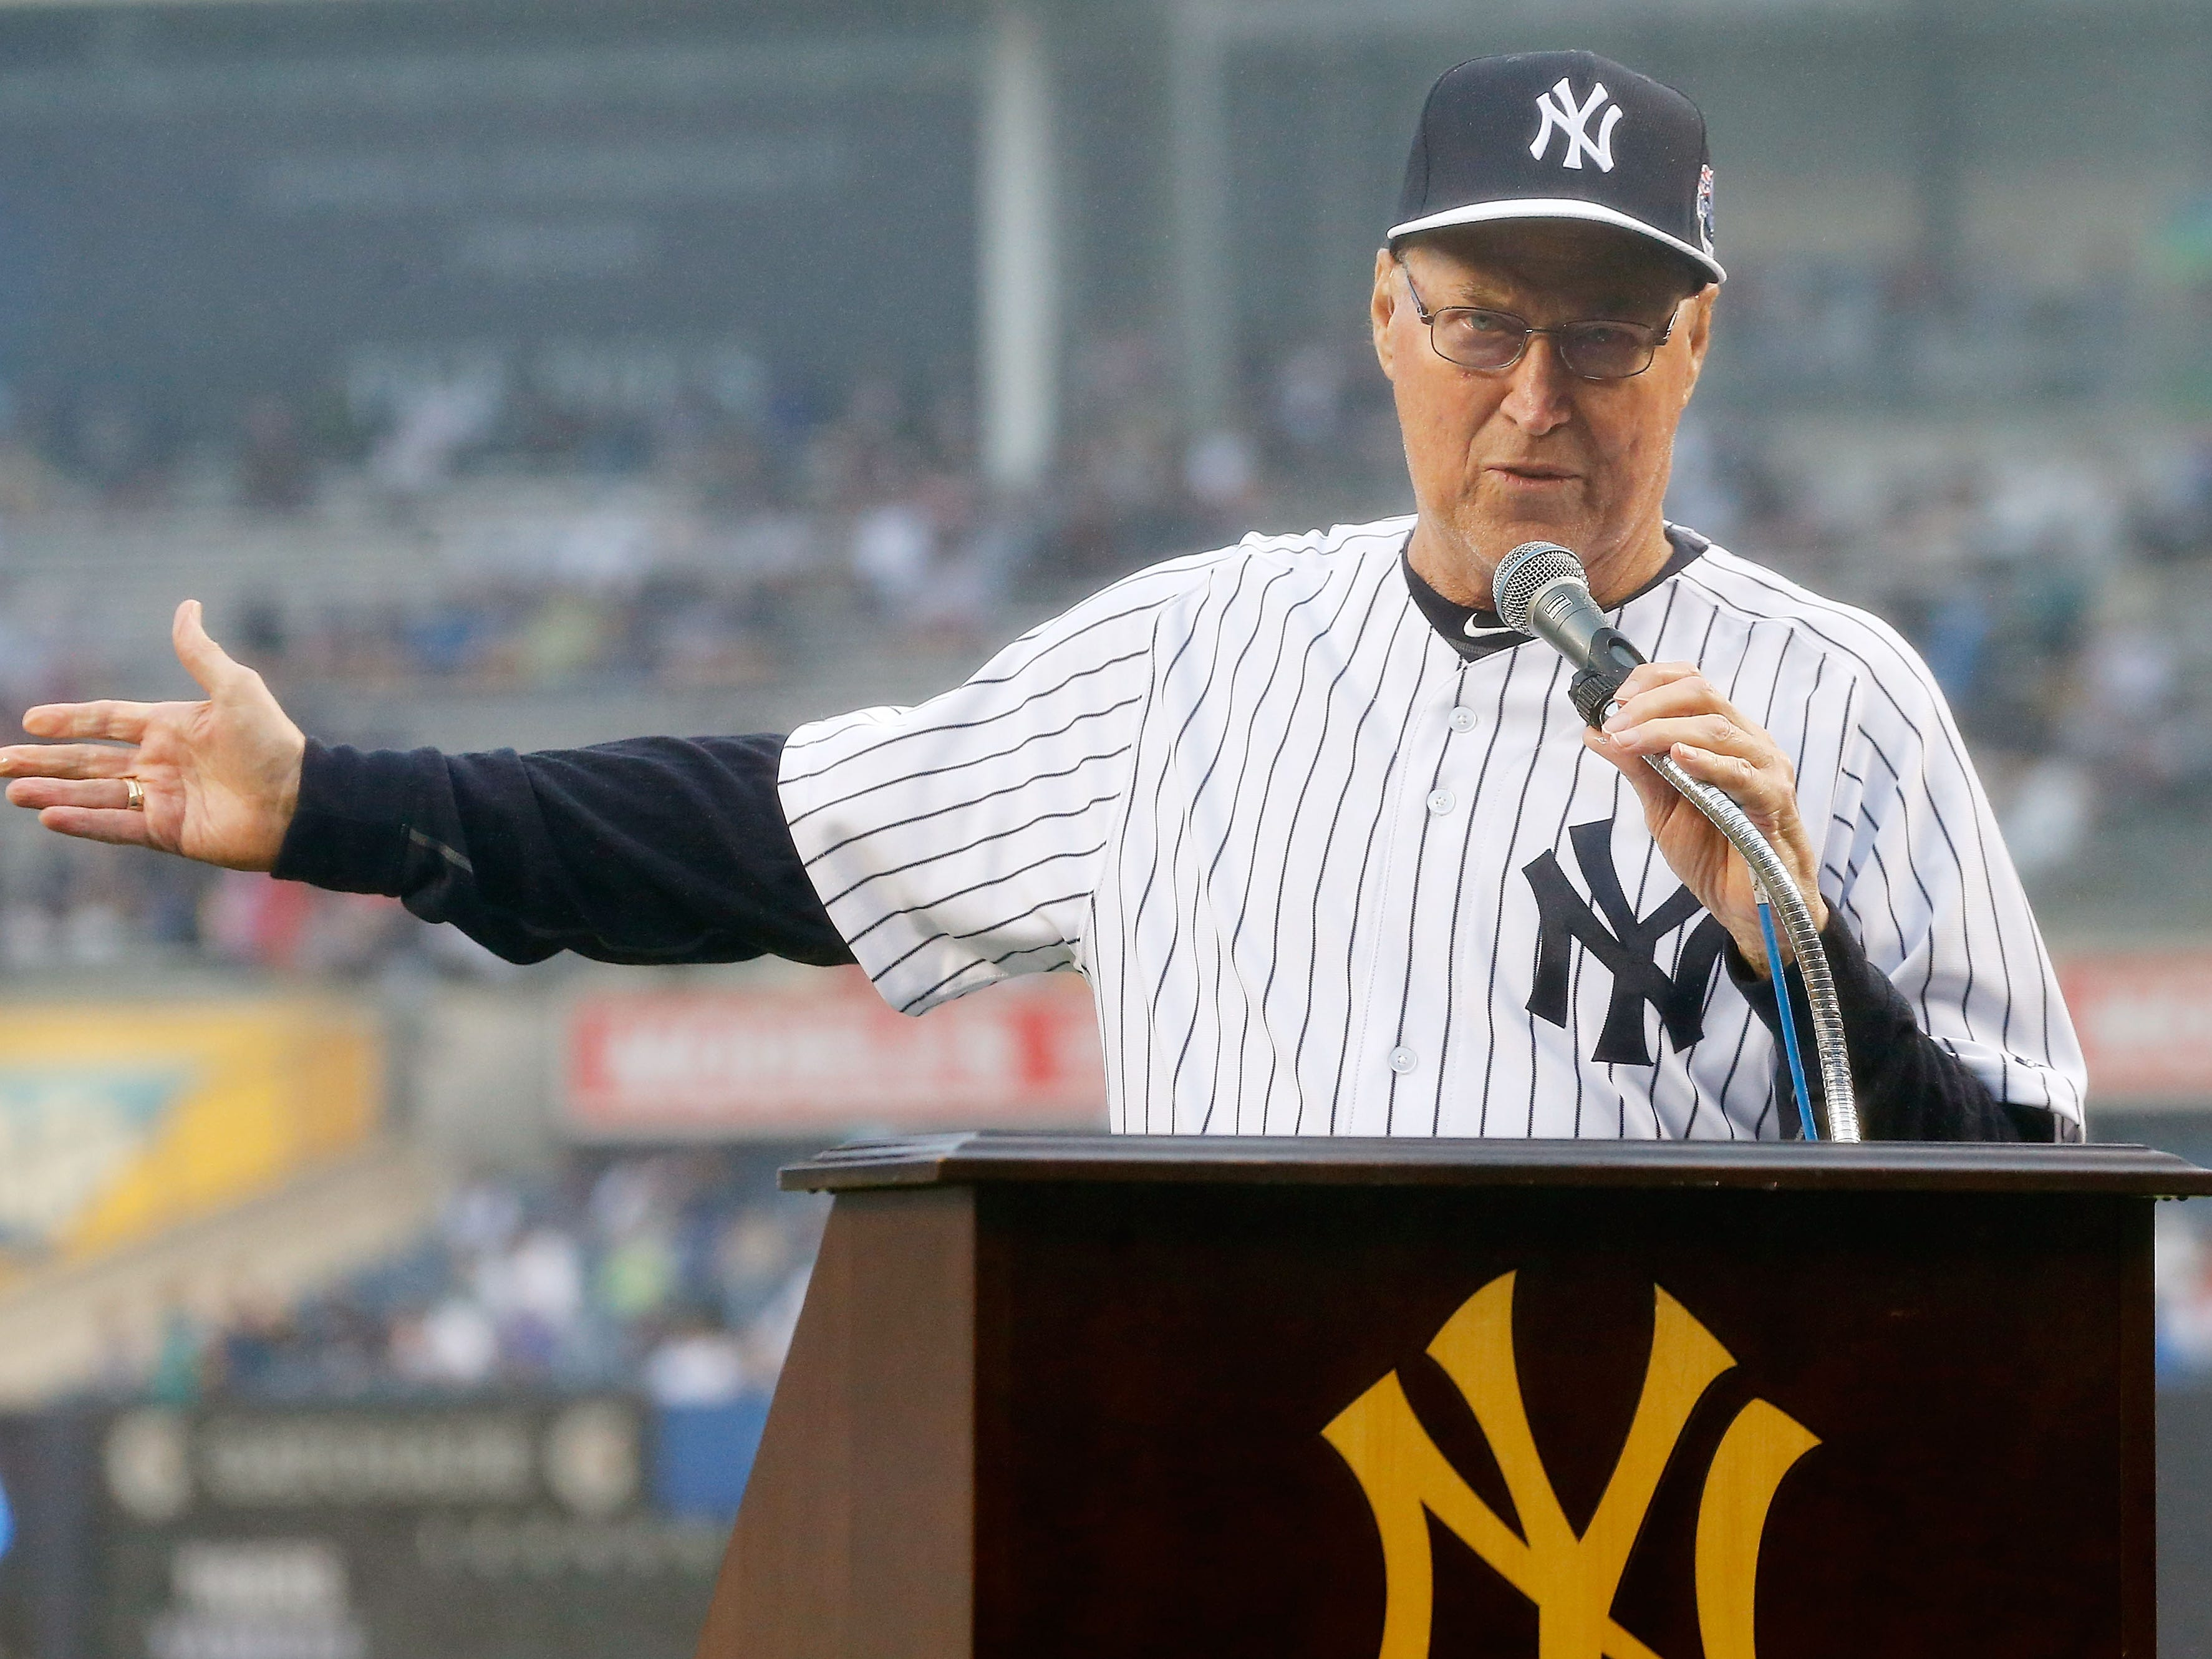 Mel Stottlemyre, major-league pitcher and pitching coach, of multiple myeloma. Jan. 13. He was 77.